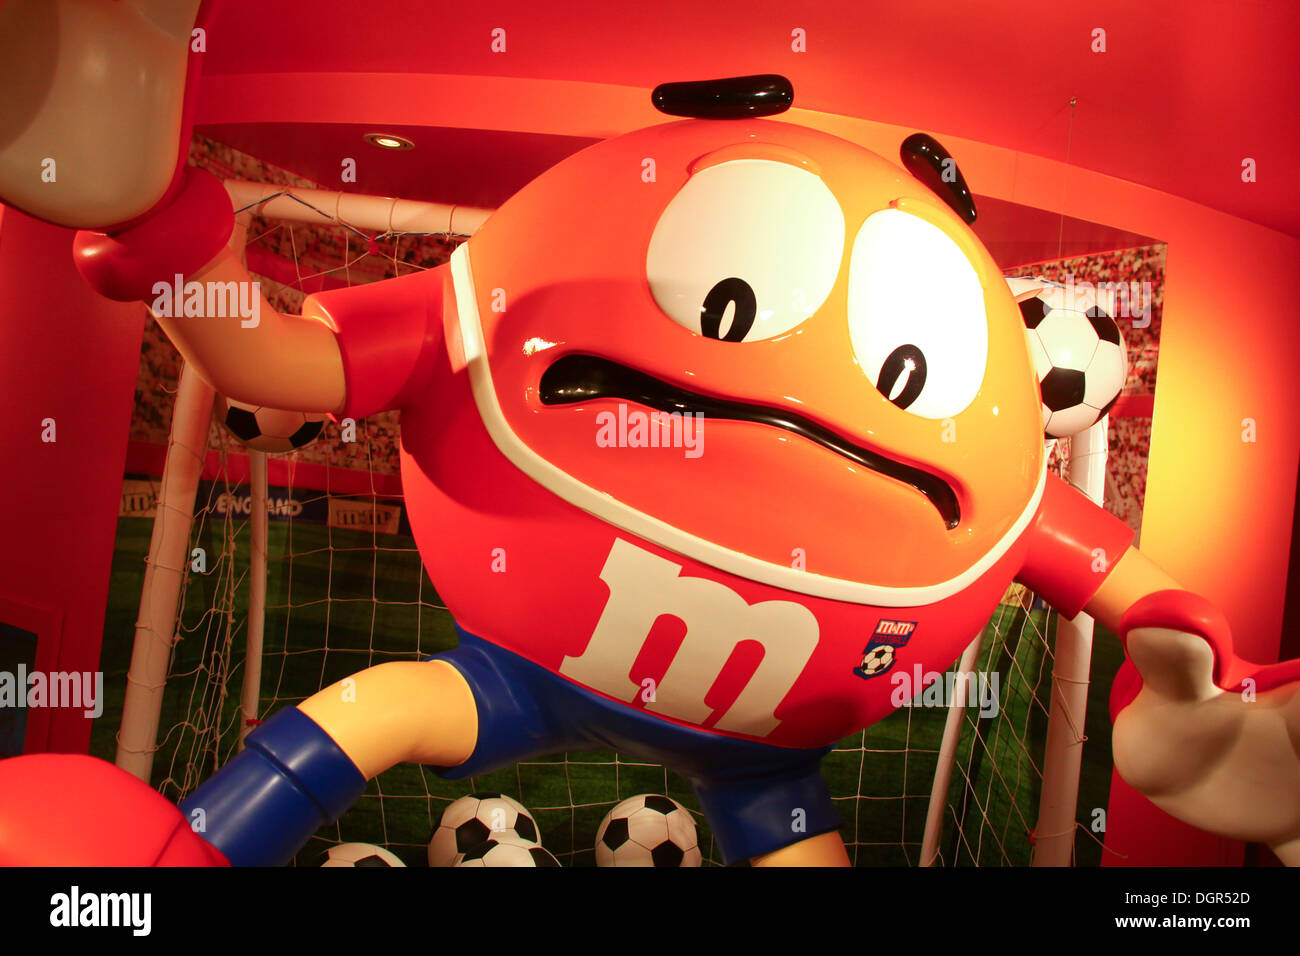 Large M&M character figure in London store - Stock Image